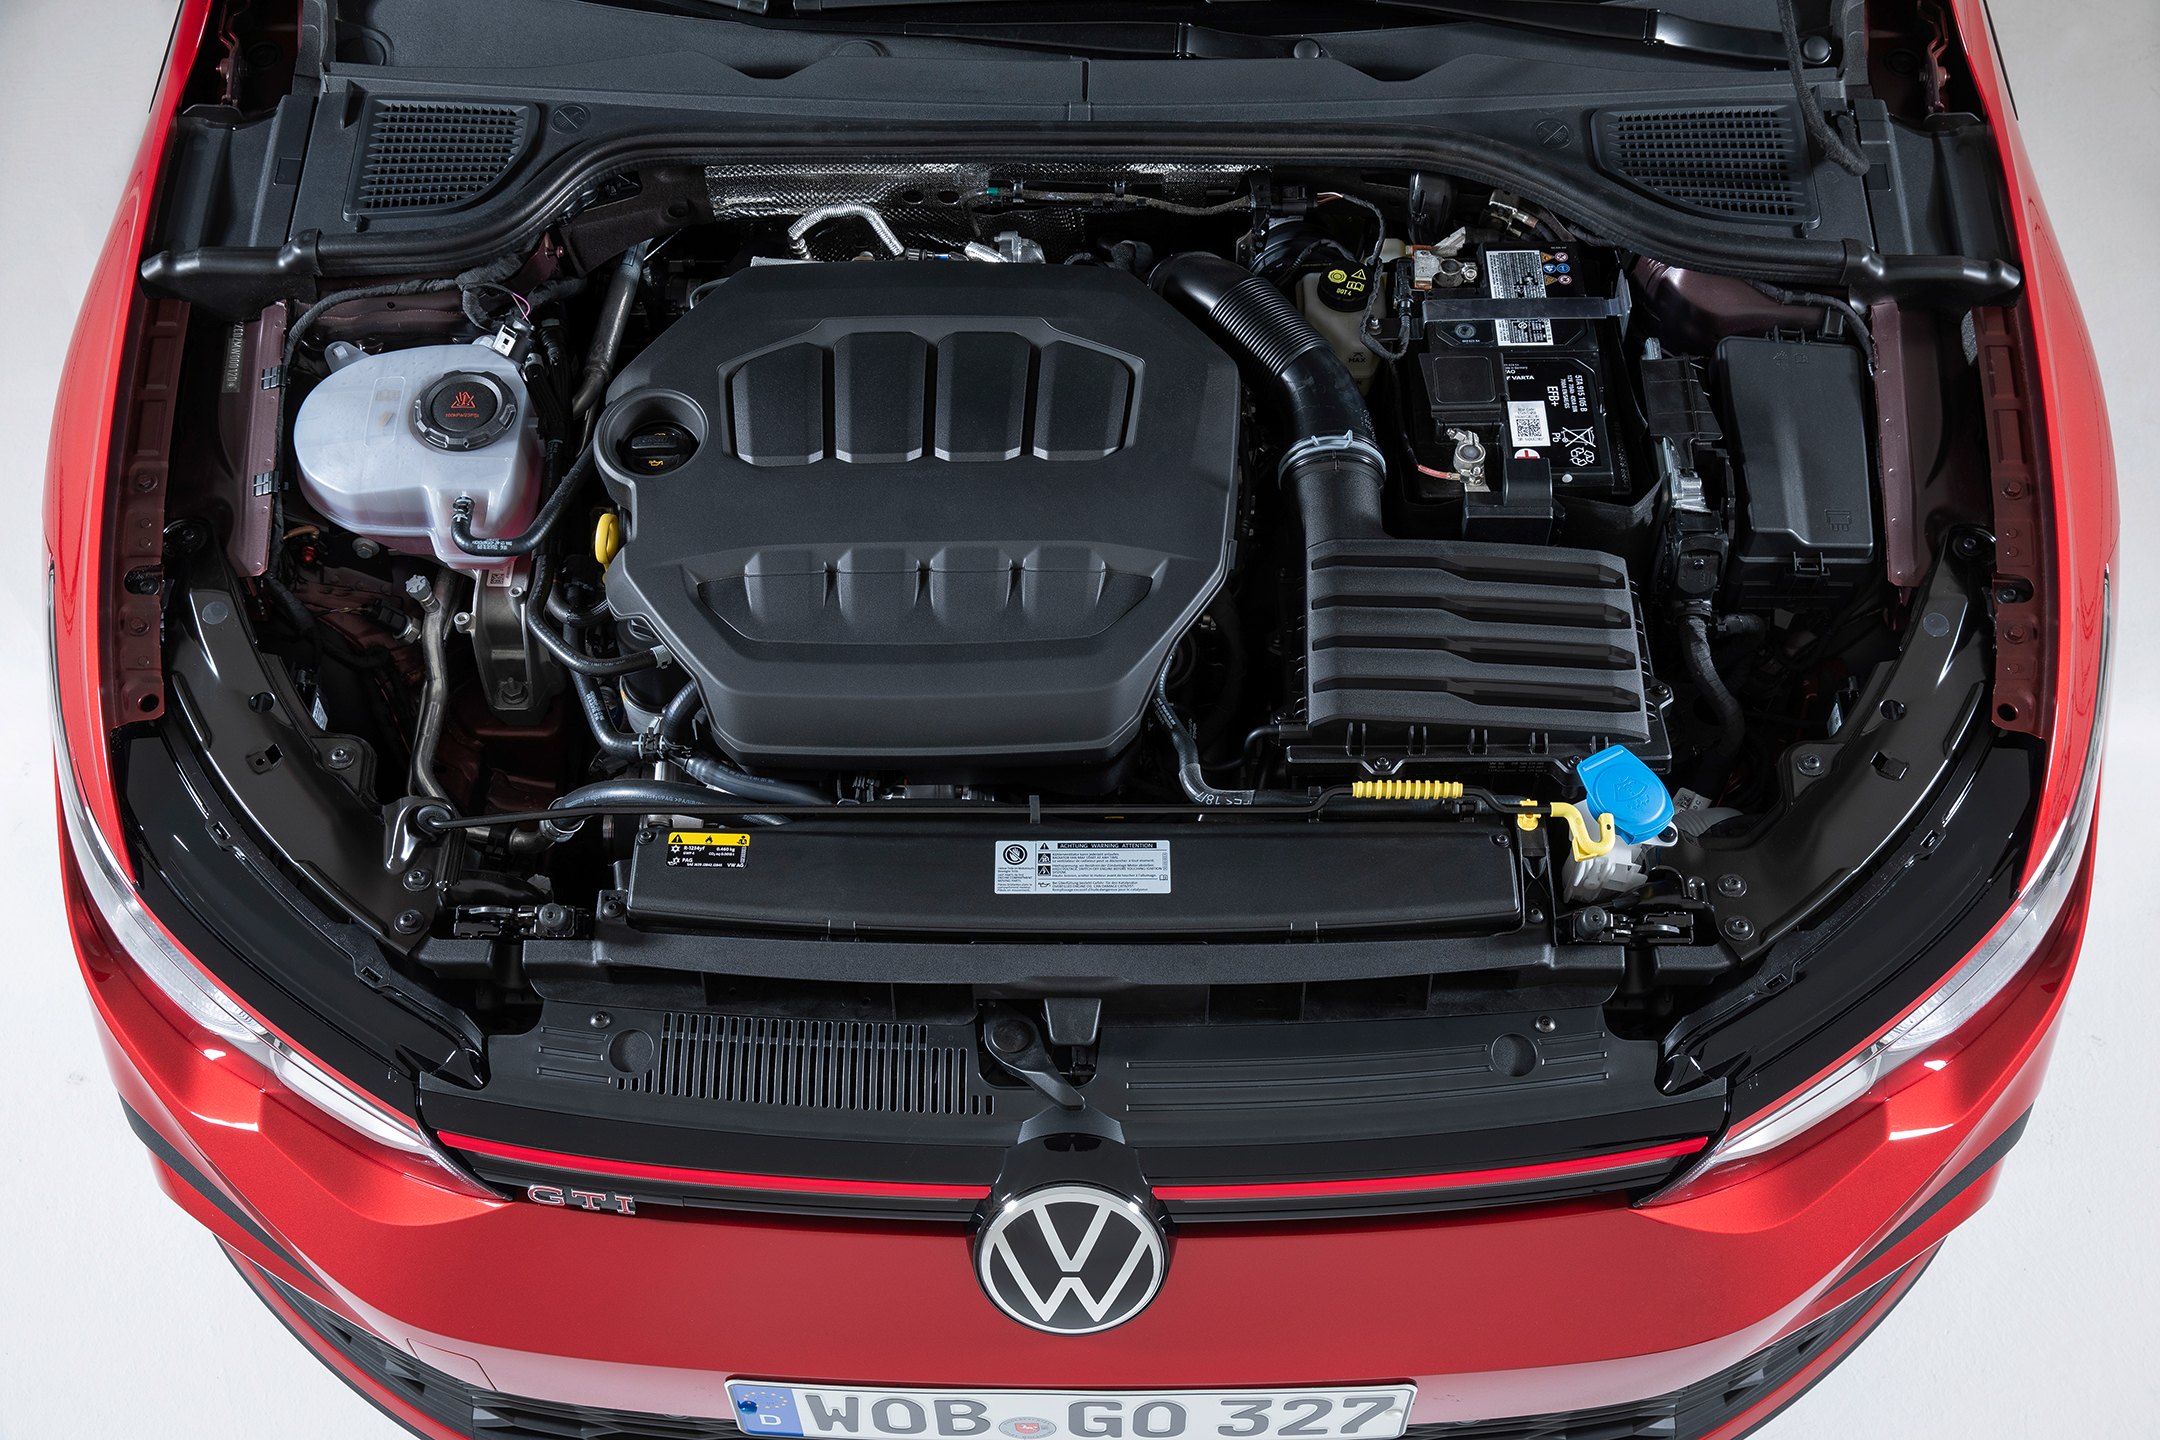 Volkswagen Golf GTI - 2020 - engine / moteur - EA888 evo4 - 2.0L - turbo - 4cylinder